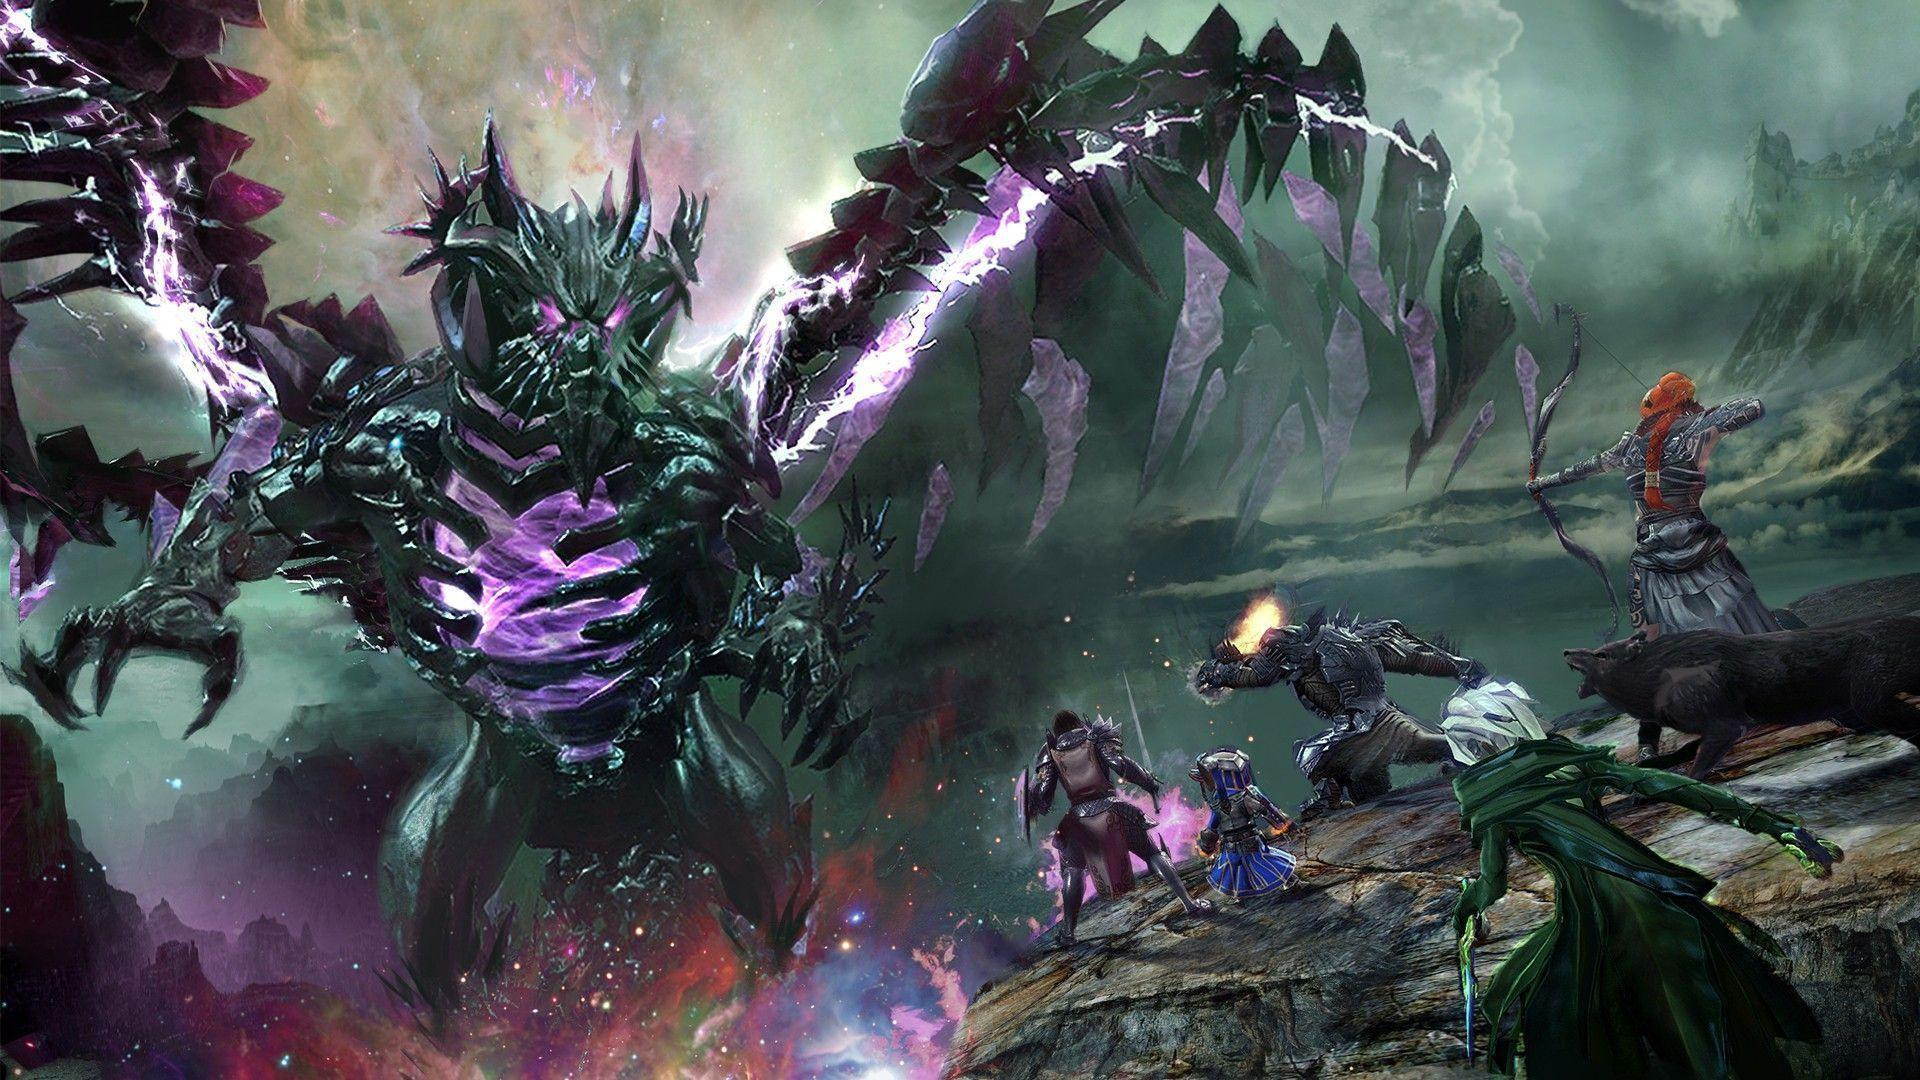 Guild Wars 2 Full Hd Wallpaper And Background Image: HD Guild Wars 2 Wallpapers